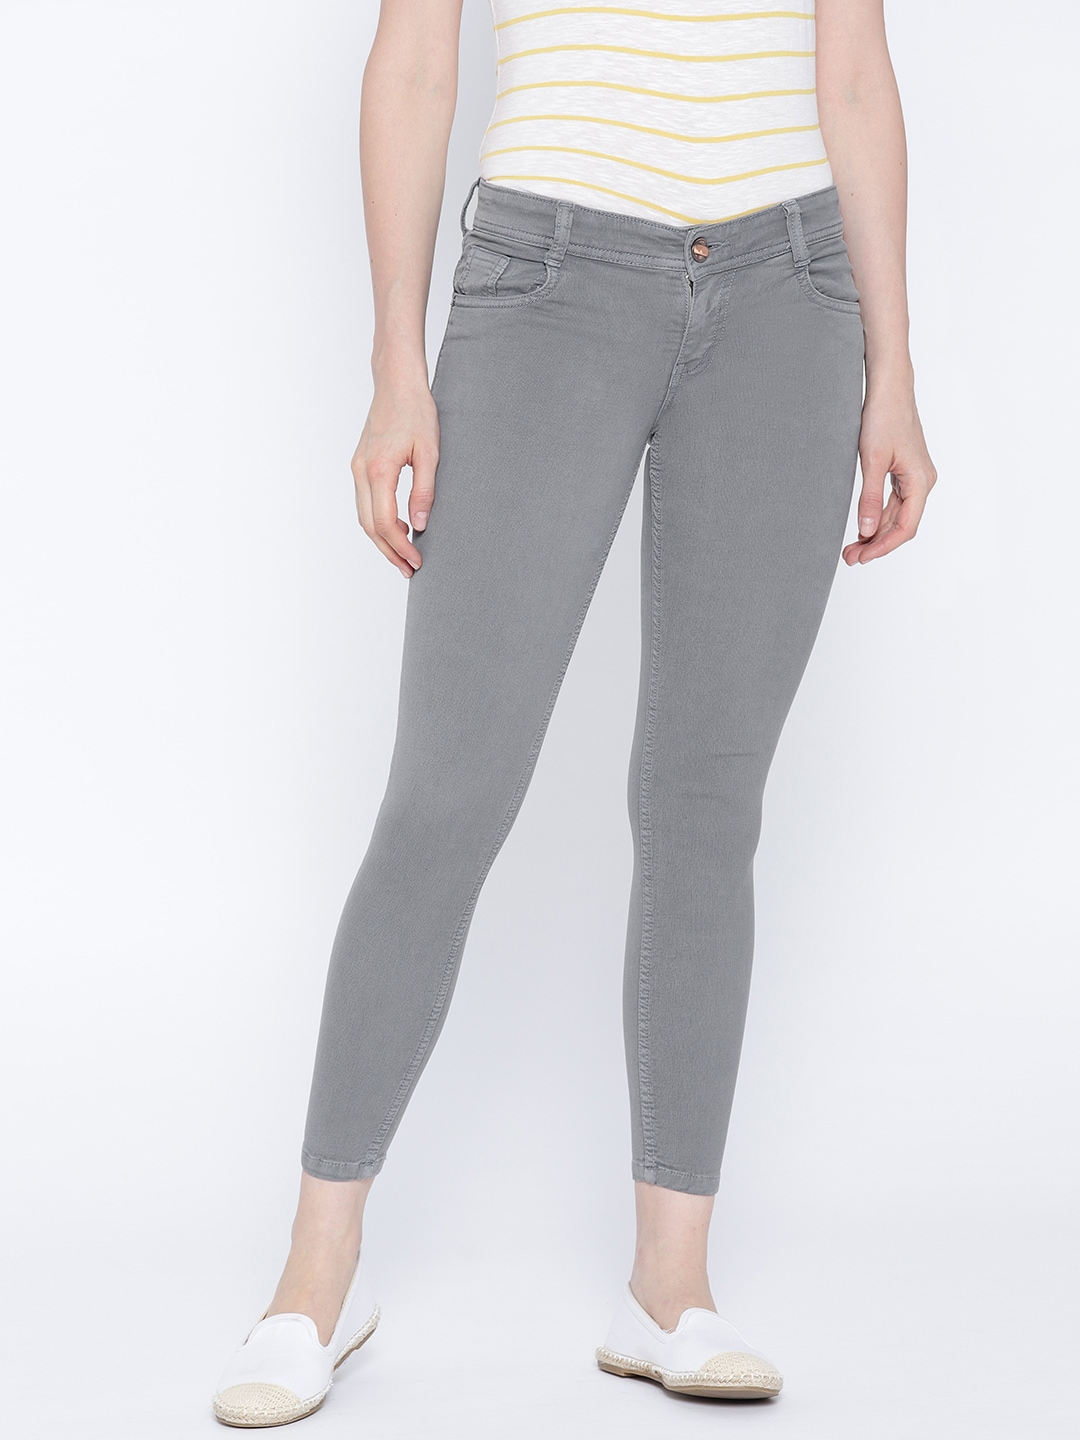 d2666edd91 Jeans for Women - Buy Womens Jeans Online in India